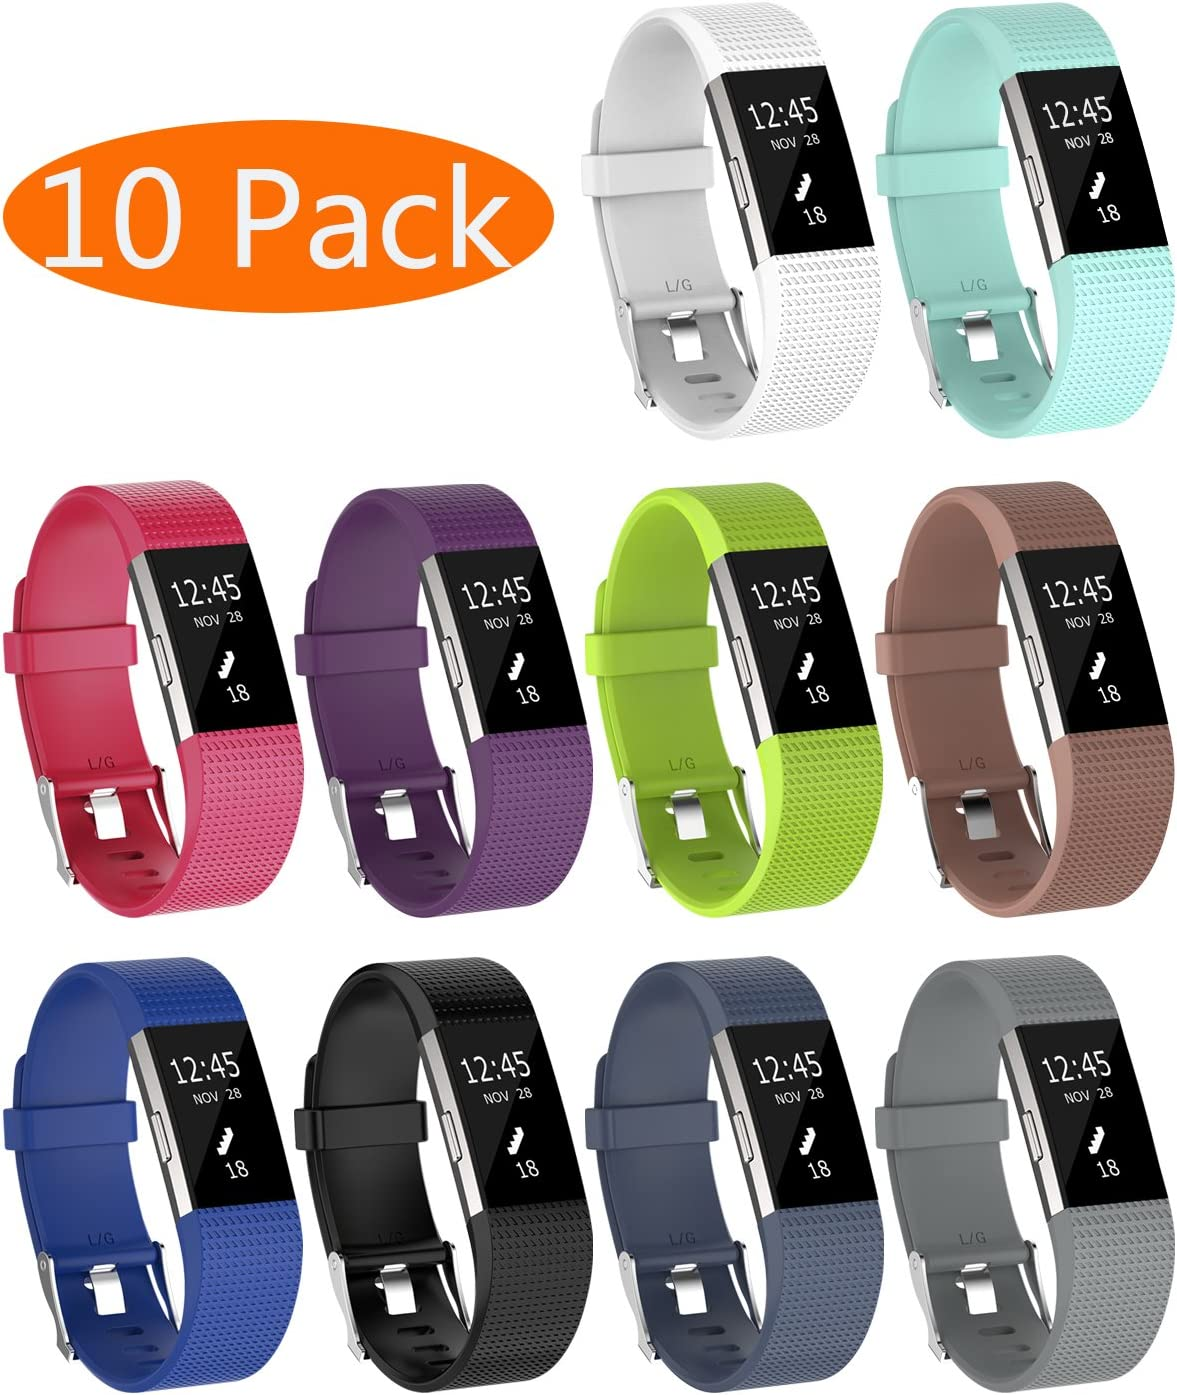 with Metal Buckle Fitness Wristband Sport Strap Women Men Soft Silicone Replacement Band for Fitbit Charge 2 KingAcc Compatible Fitbit Charge 2 Bands 10-Pack, 10 Colors, Small